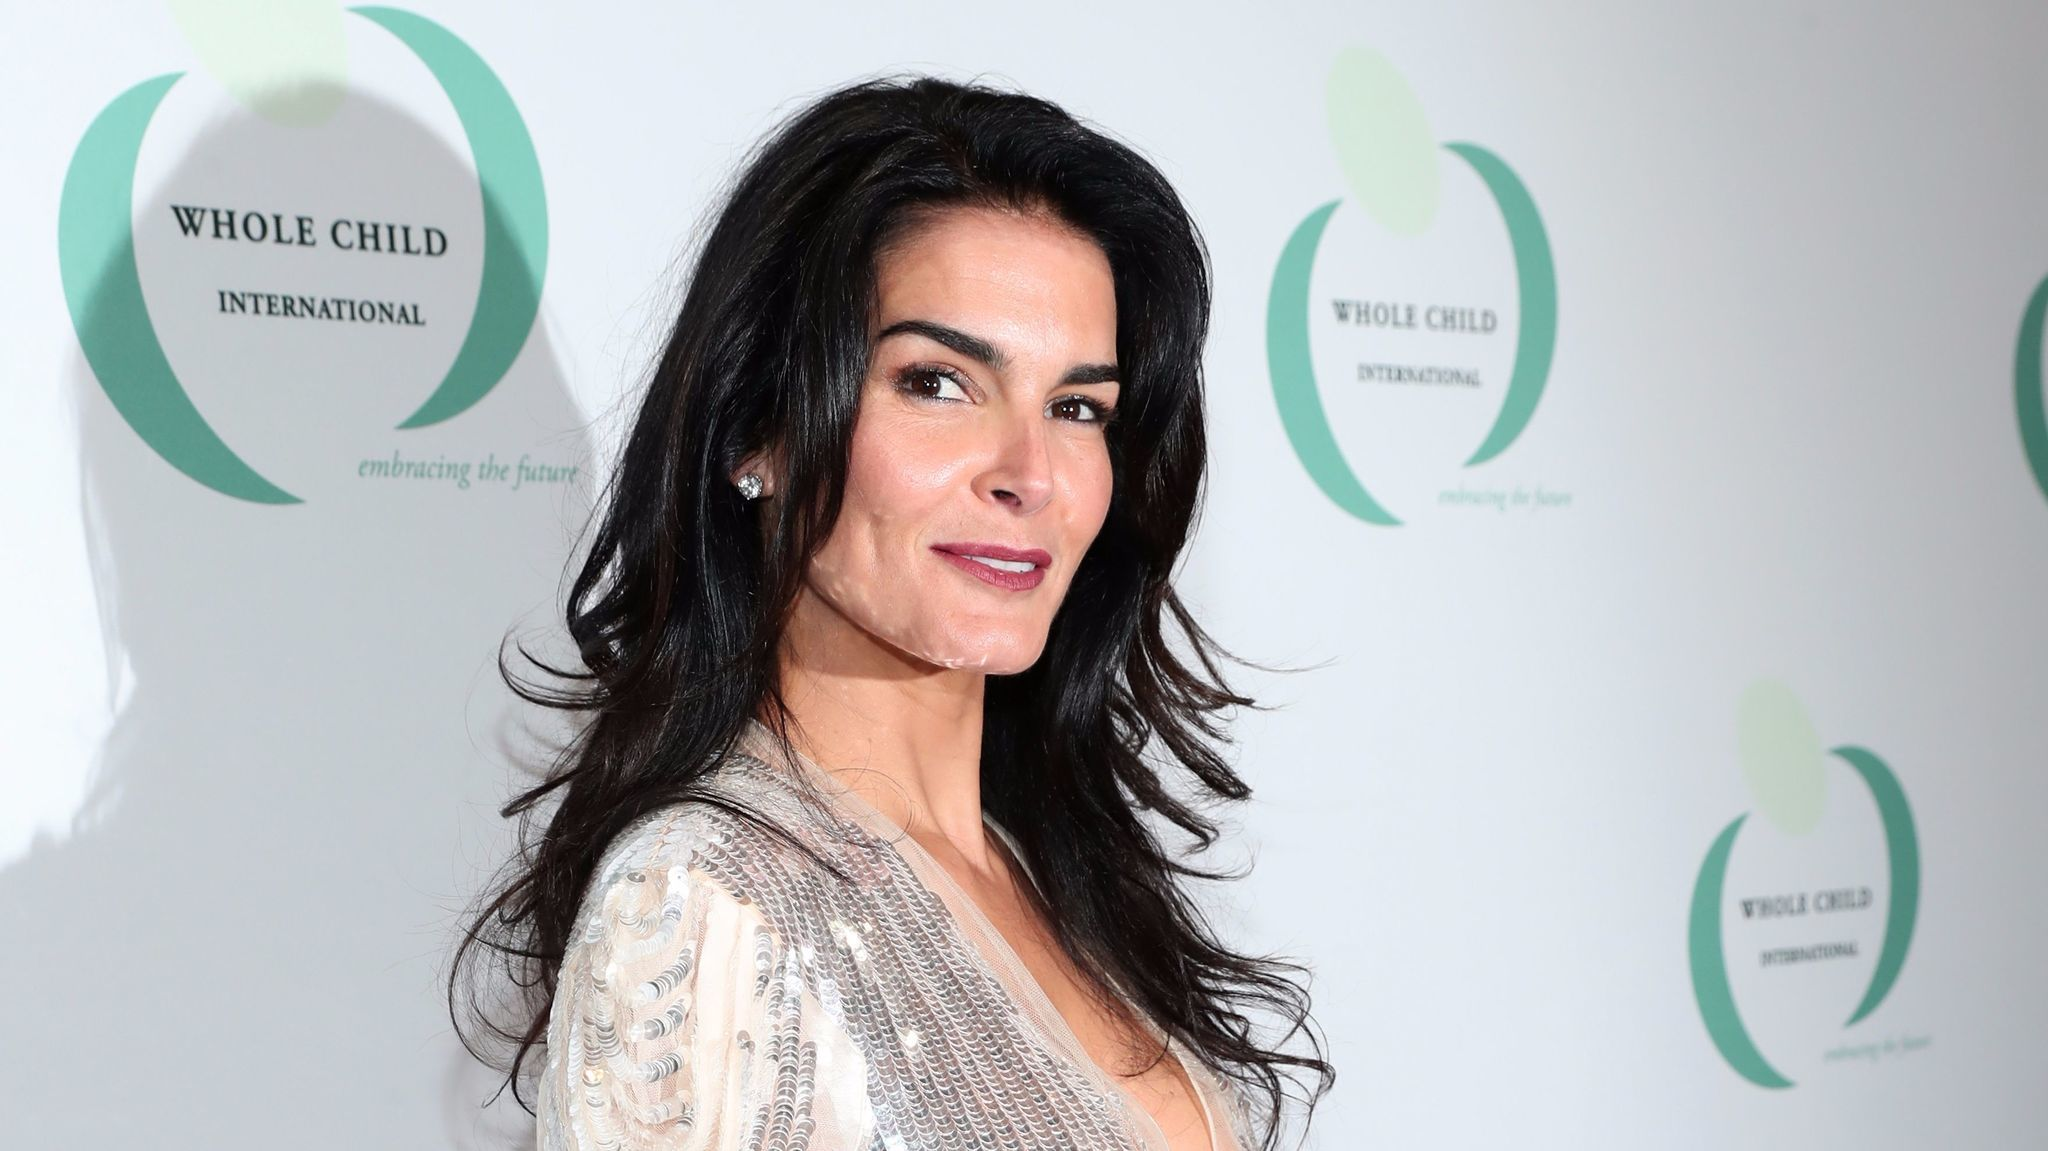 Angie Harmon at the Whole Child International Gala.